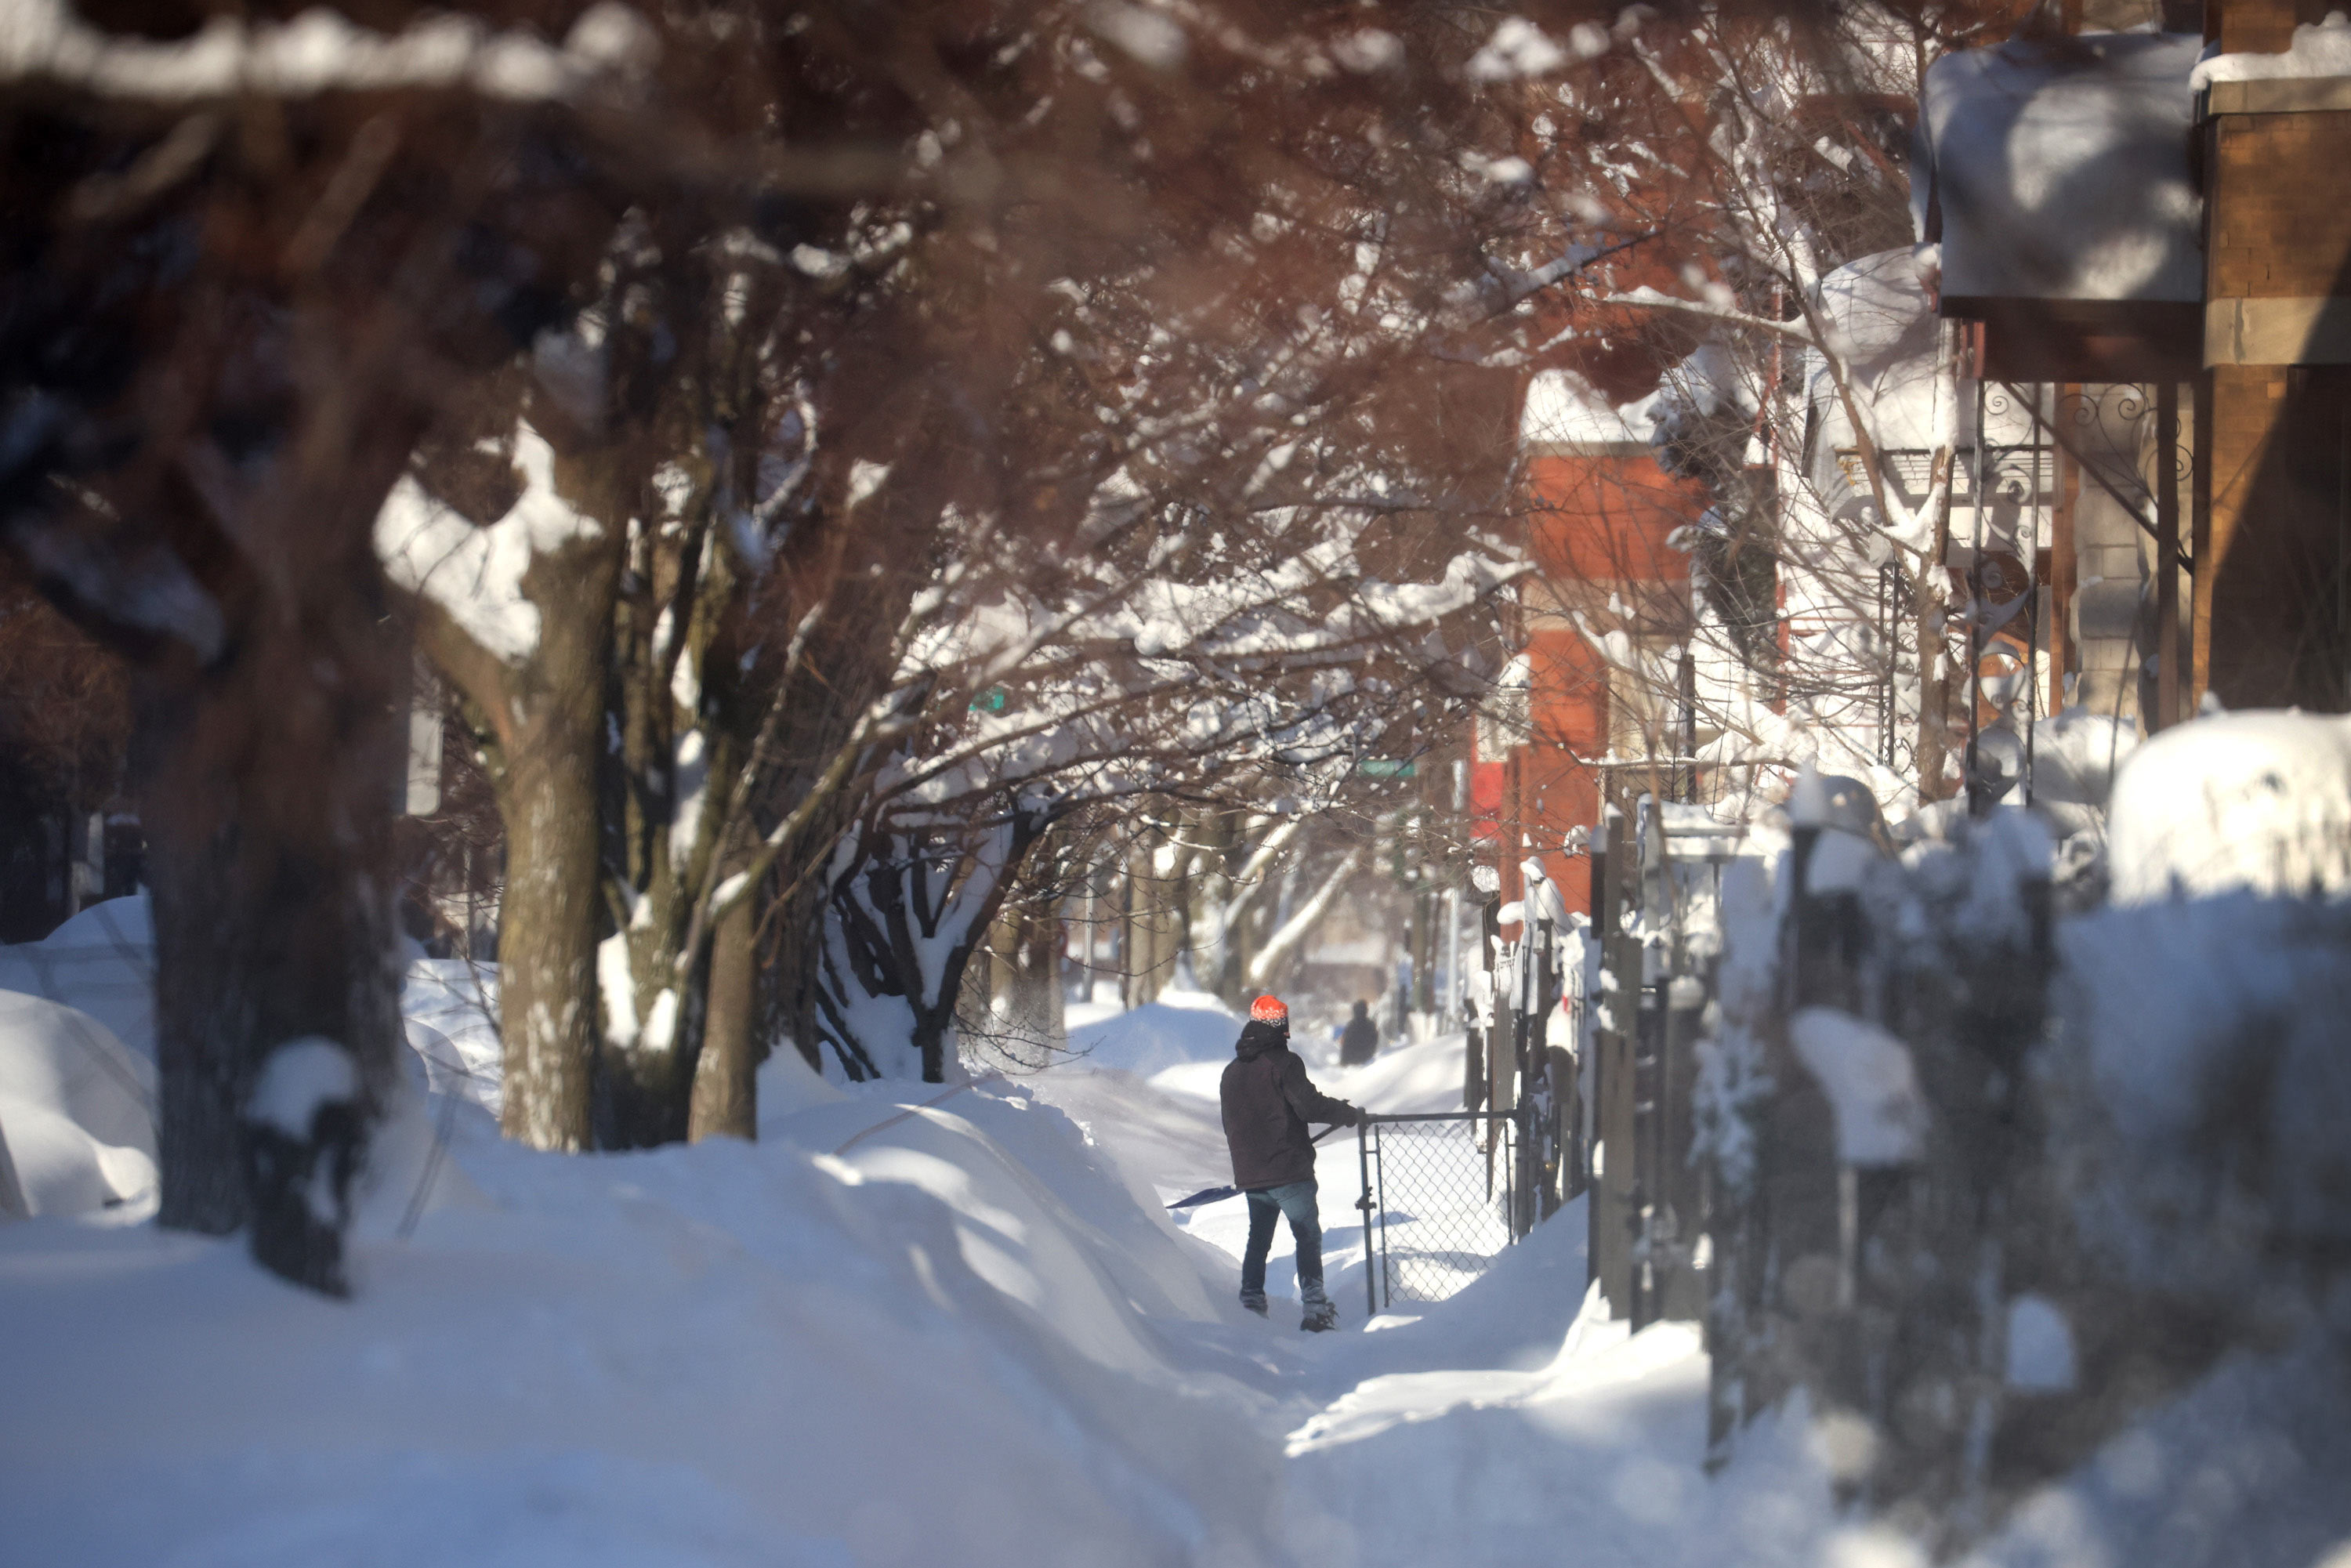 A resident clears snow from a sidewalk on February 16 in Chicago.